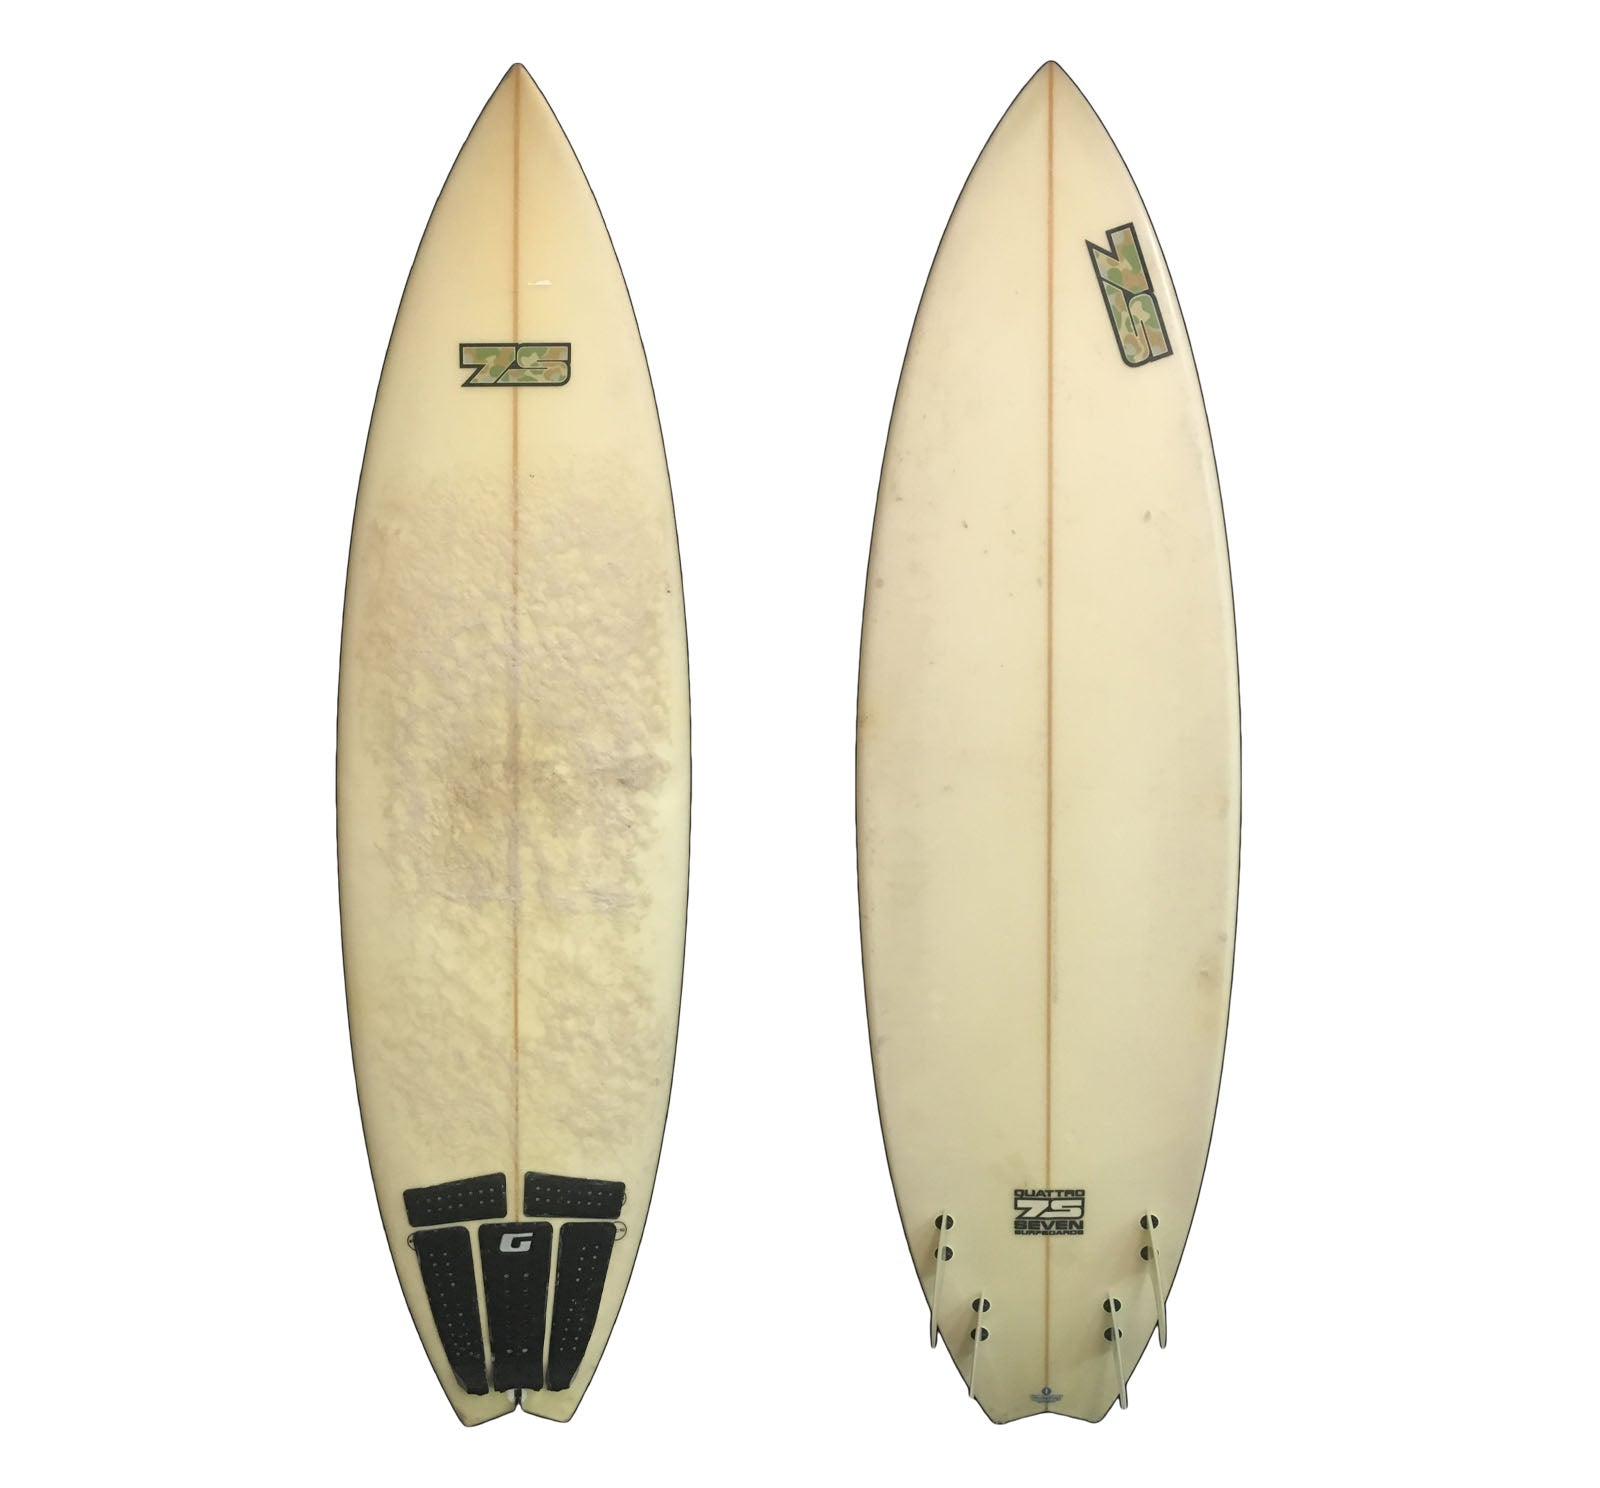 7S Quattro Quad Swallow Tail 6'3 Used Surfboard